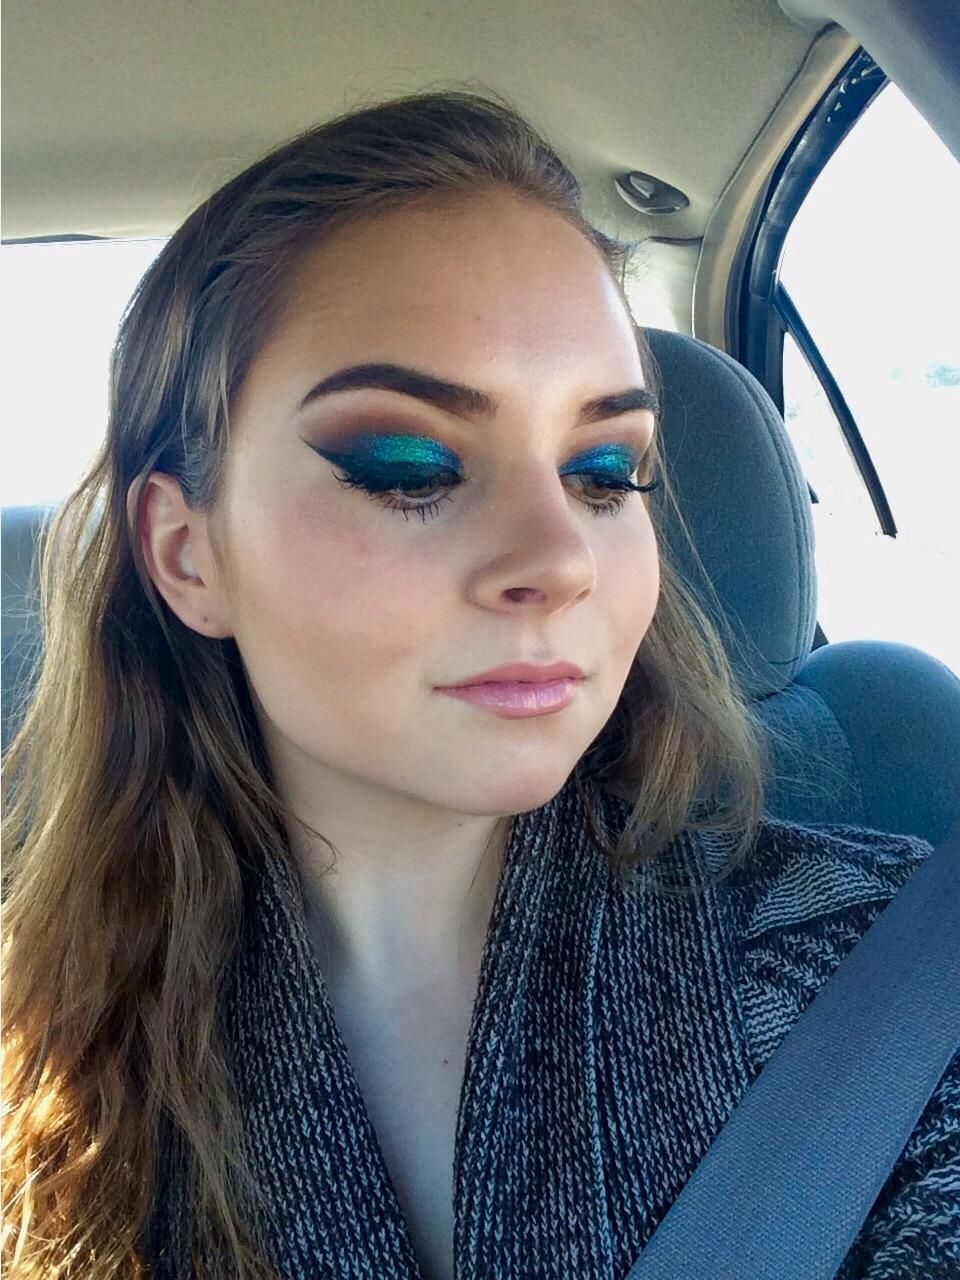 Green glitter look to celebrate the Eagles victory last